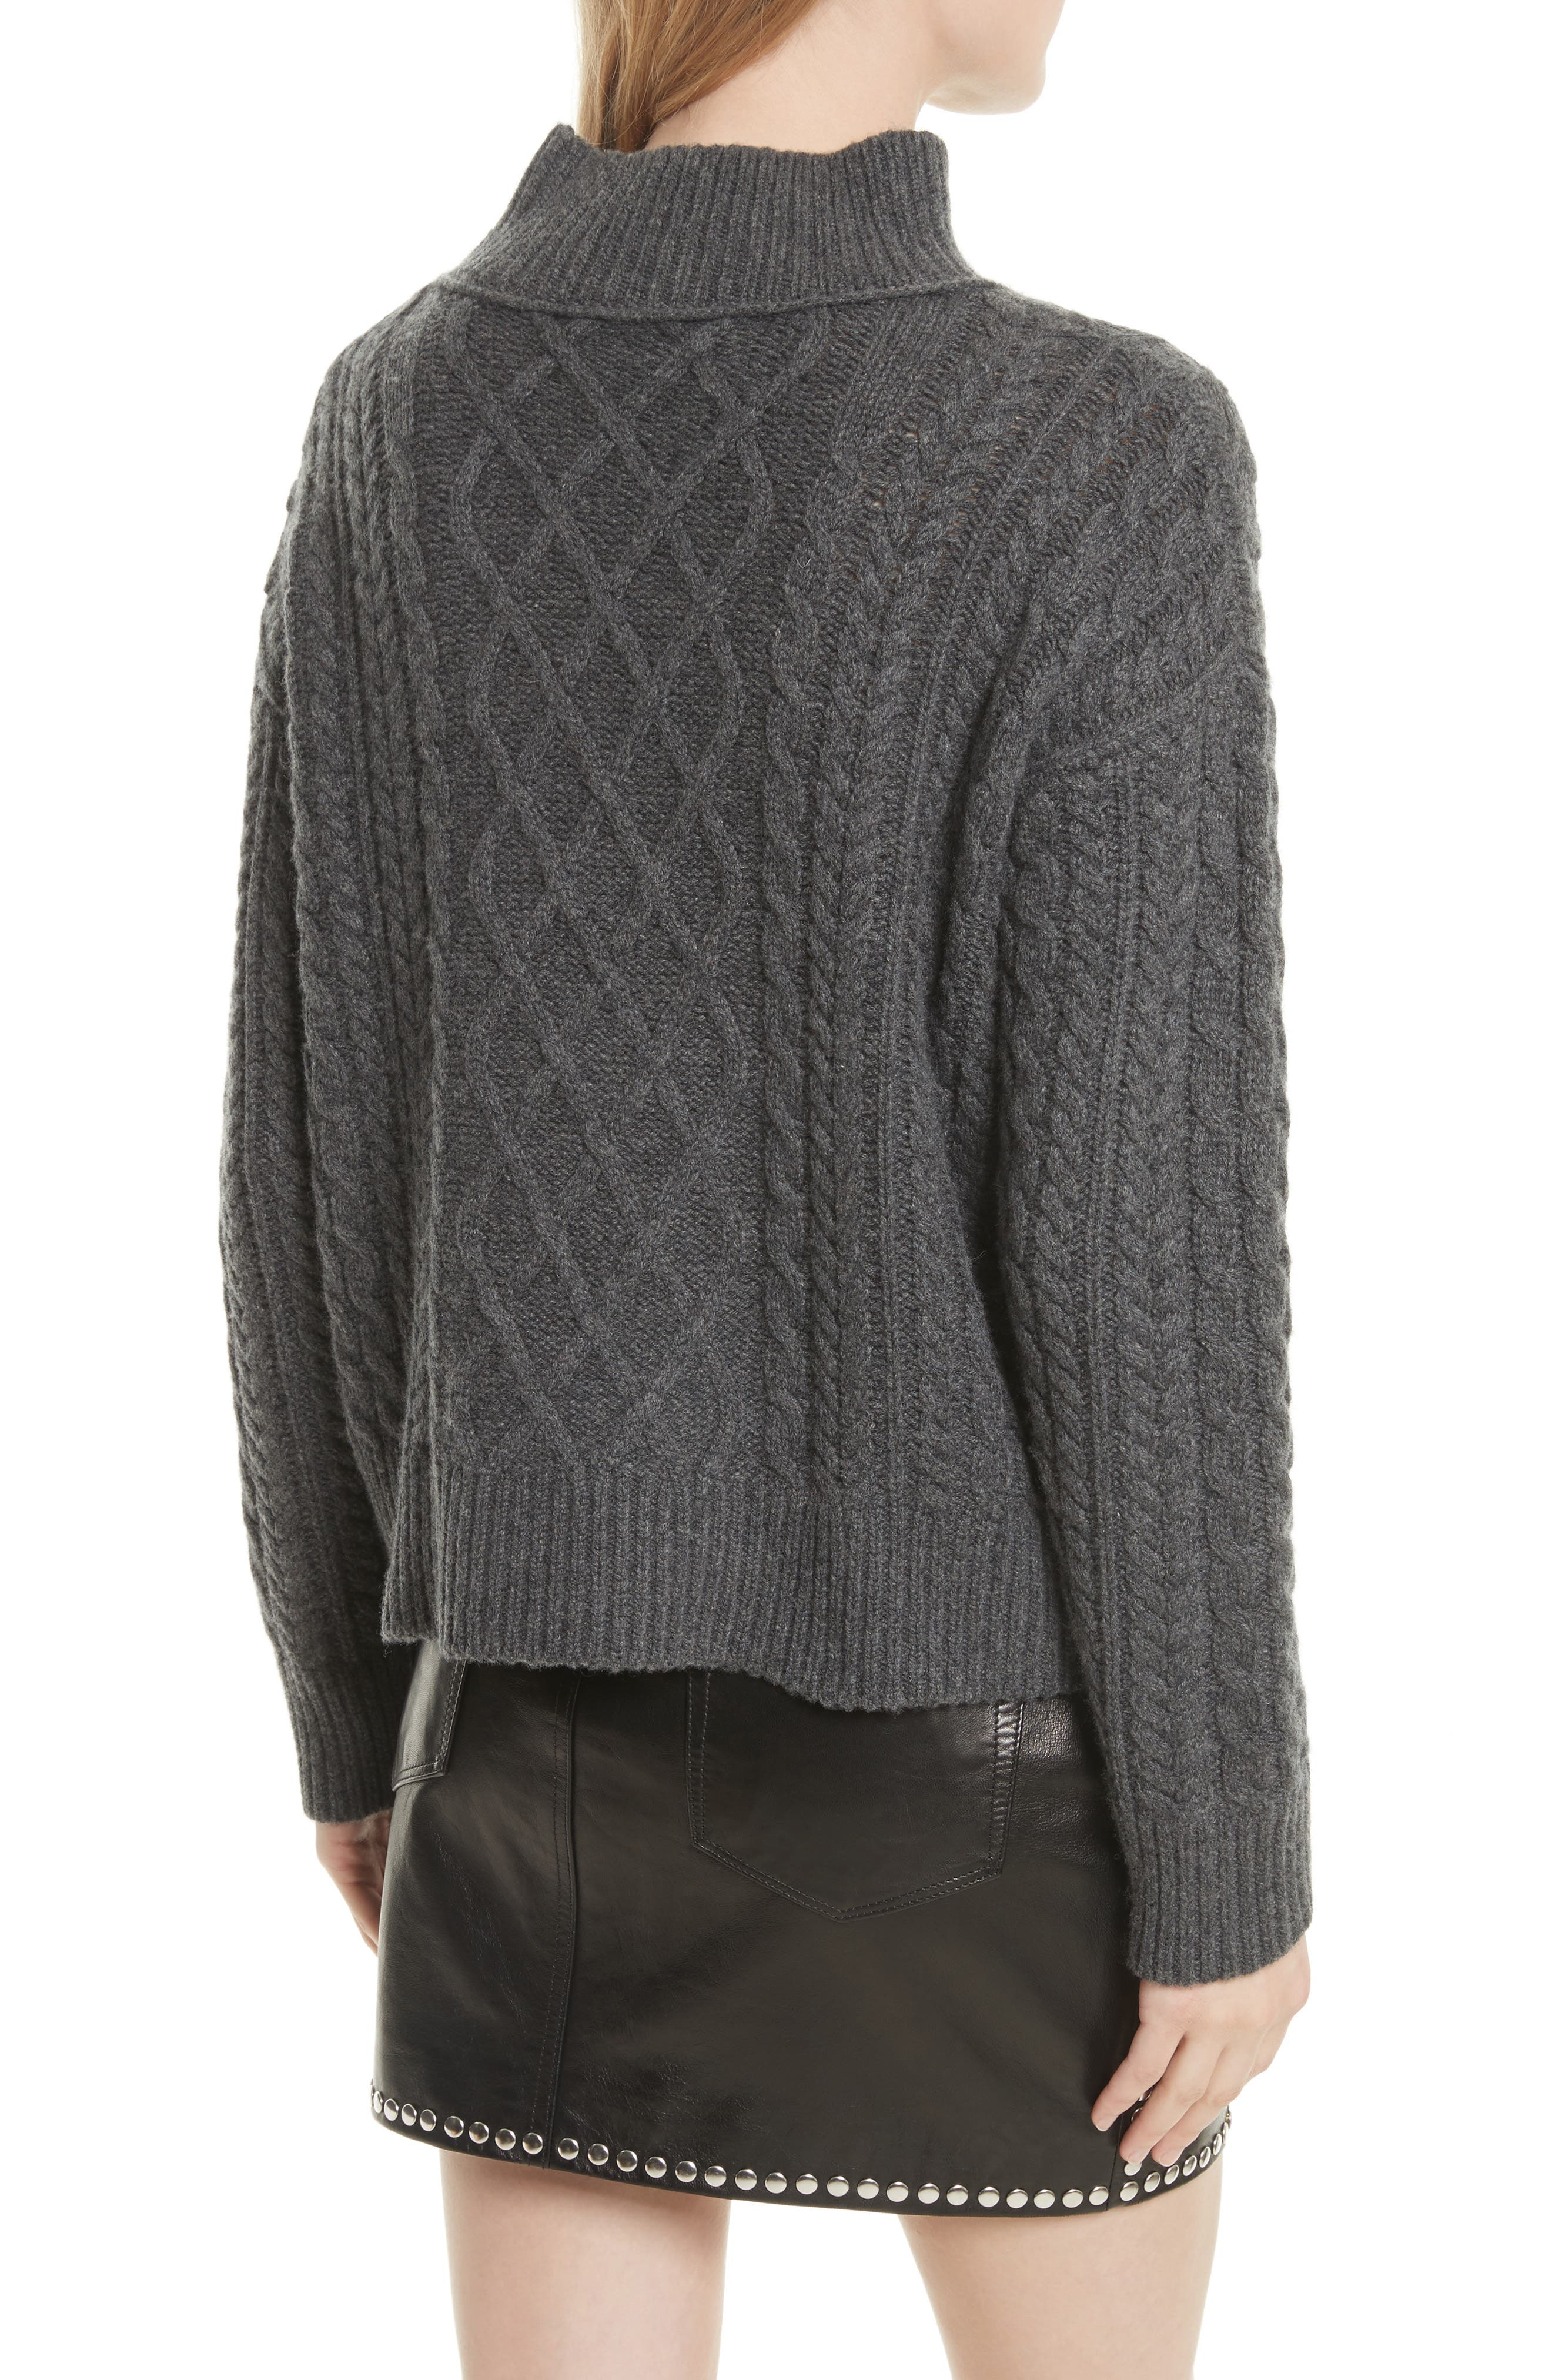 Alternate Image 3  - FRAME Wool & Cashmere Cable Knit Crop Sweater (Nordstrom Exclusive)